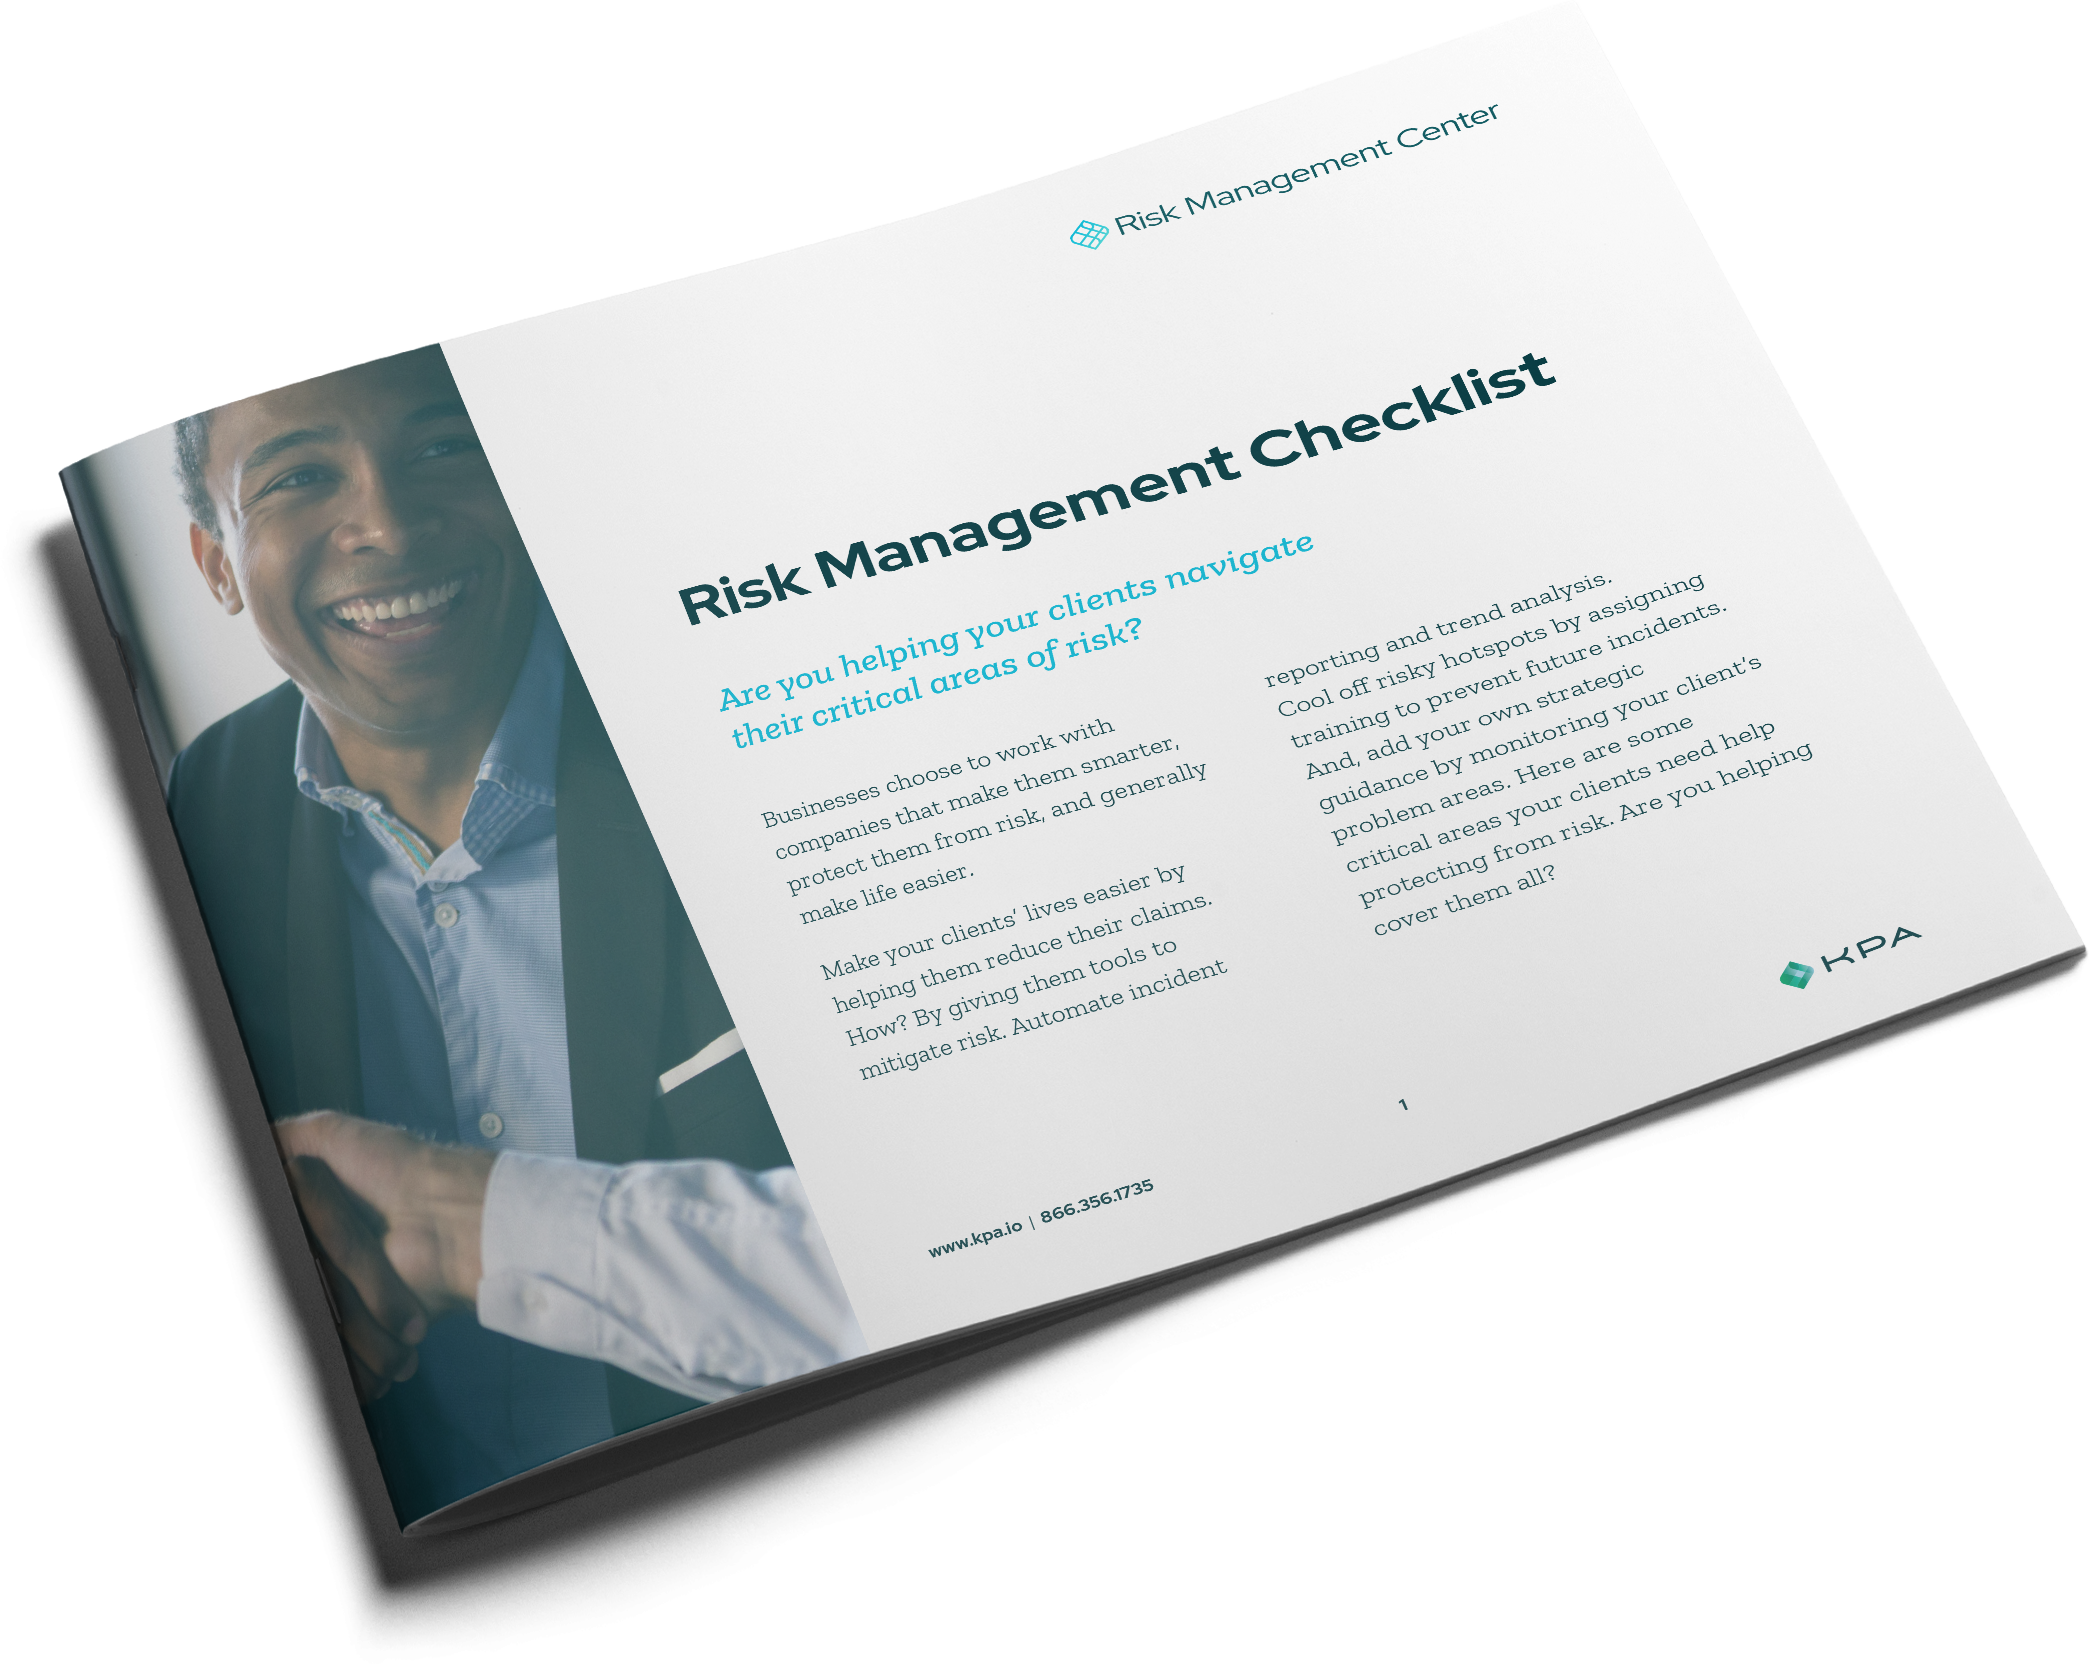 risk management checklist cover